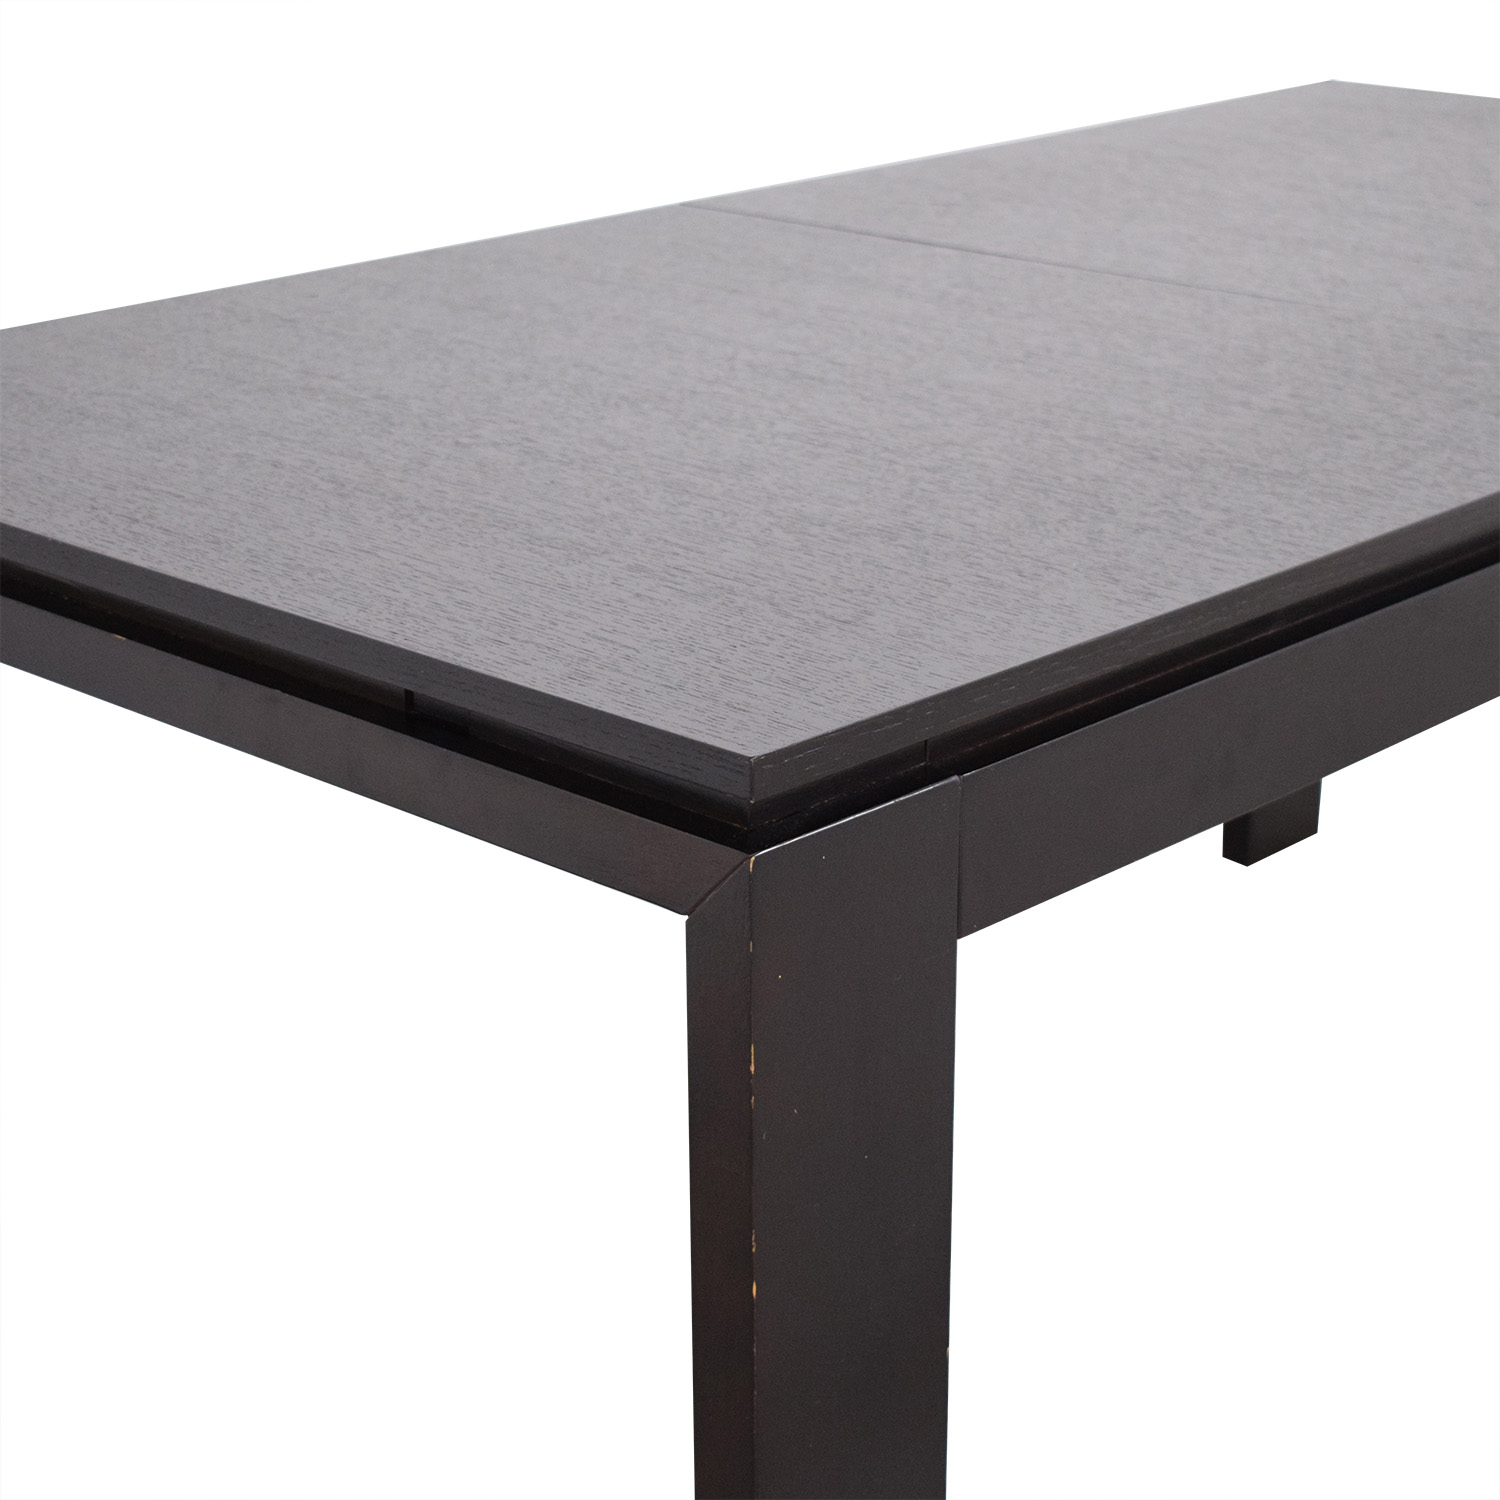 CB2 Wenge Expandable Dining Table / Dinner Tables